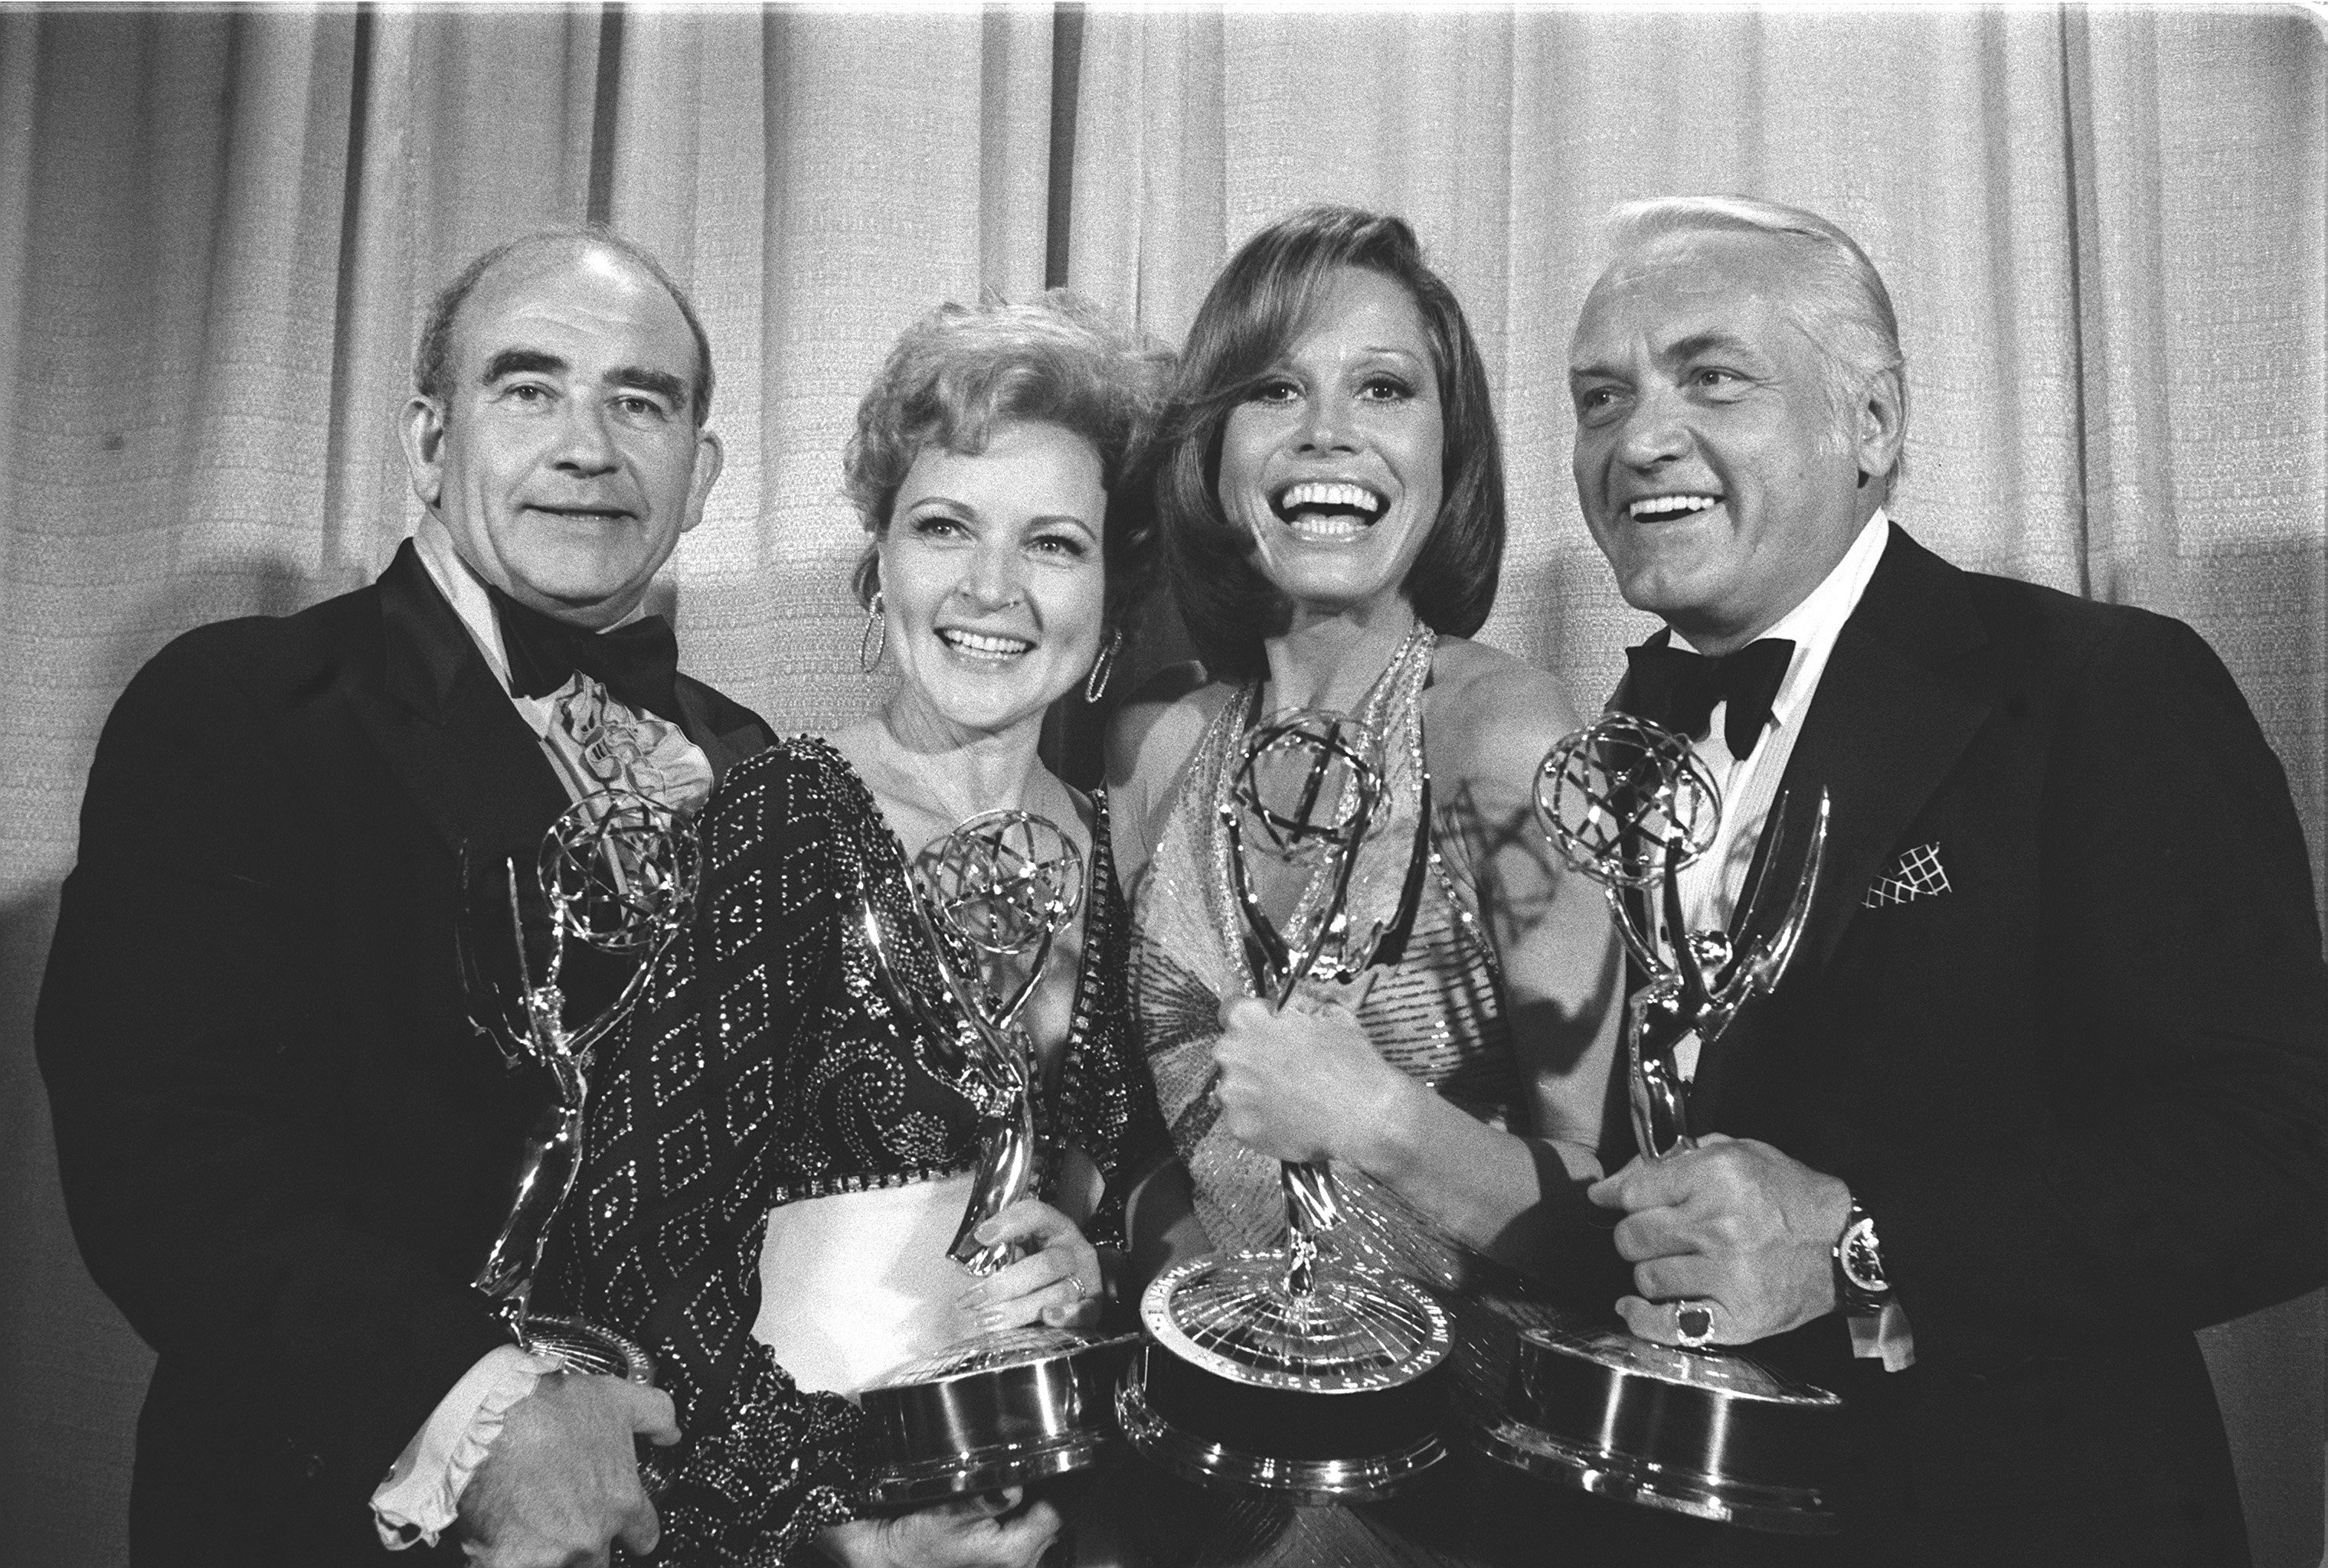 LOS ANGELES - JANUARY 1: THE MARY TYLER MOORE SHOW: Emmy Awards. (from left) Edward Asner, Betty White, Mary Tyler Moore, Ted Knight. |Source: Getty Images